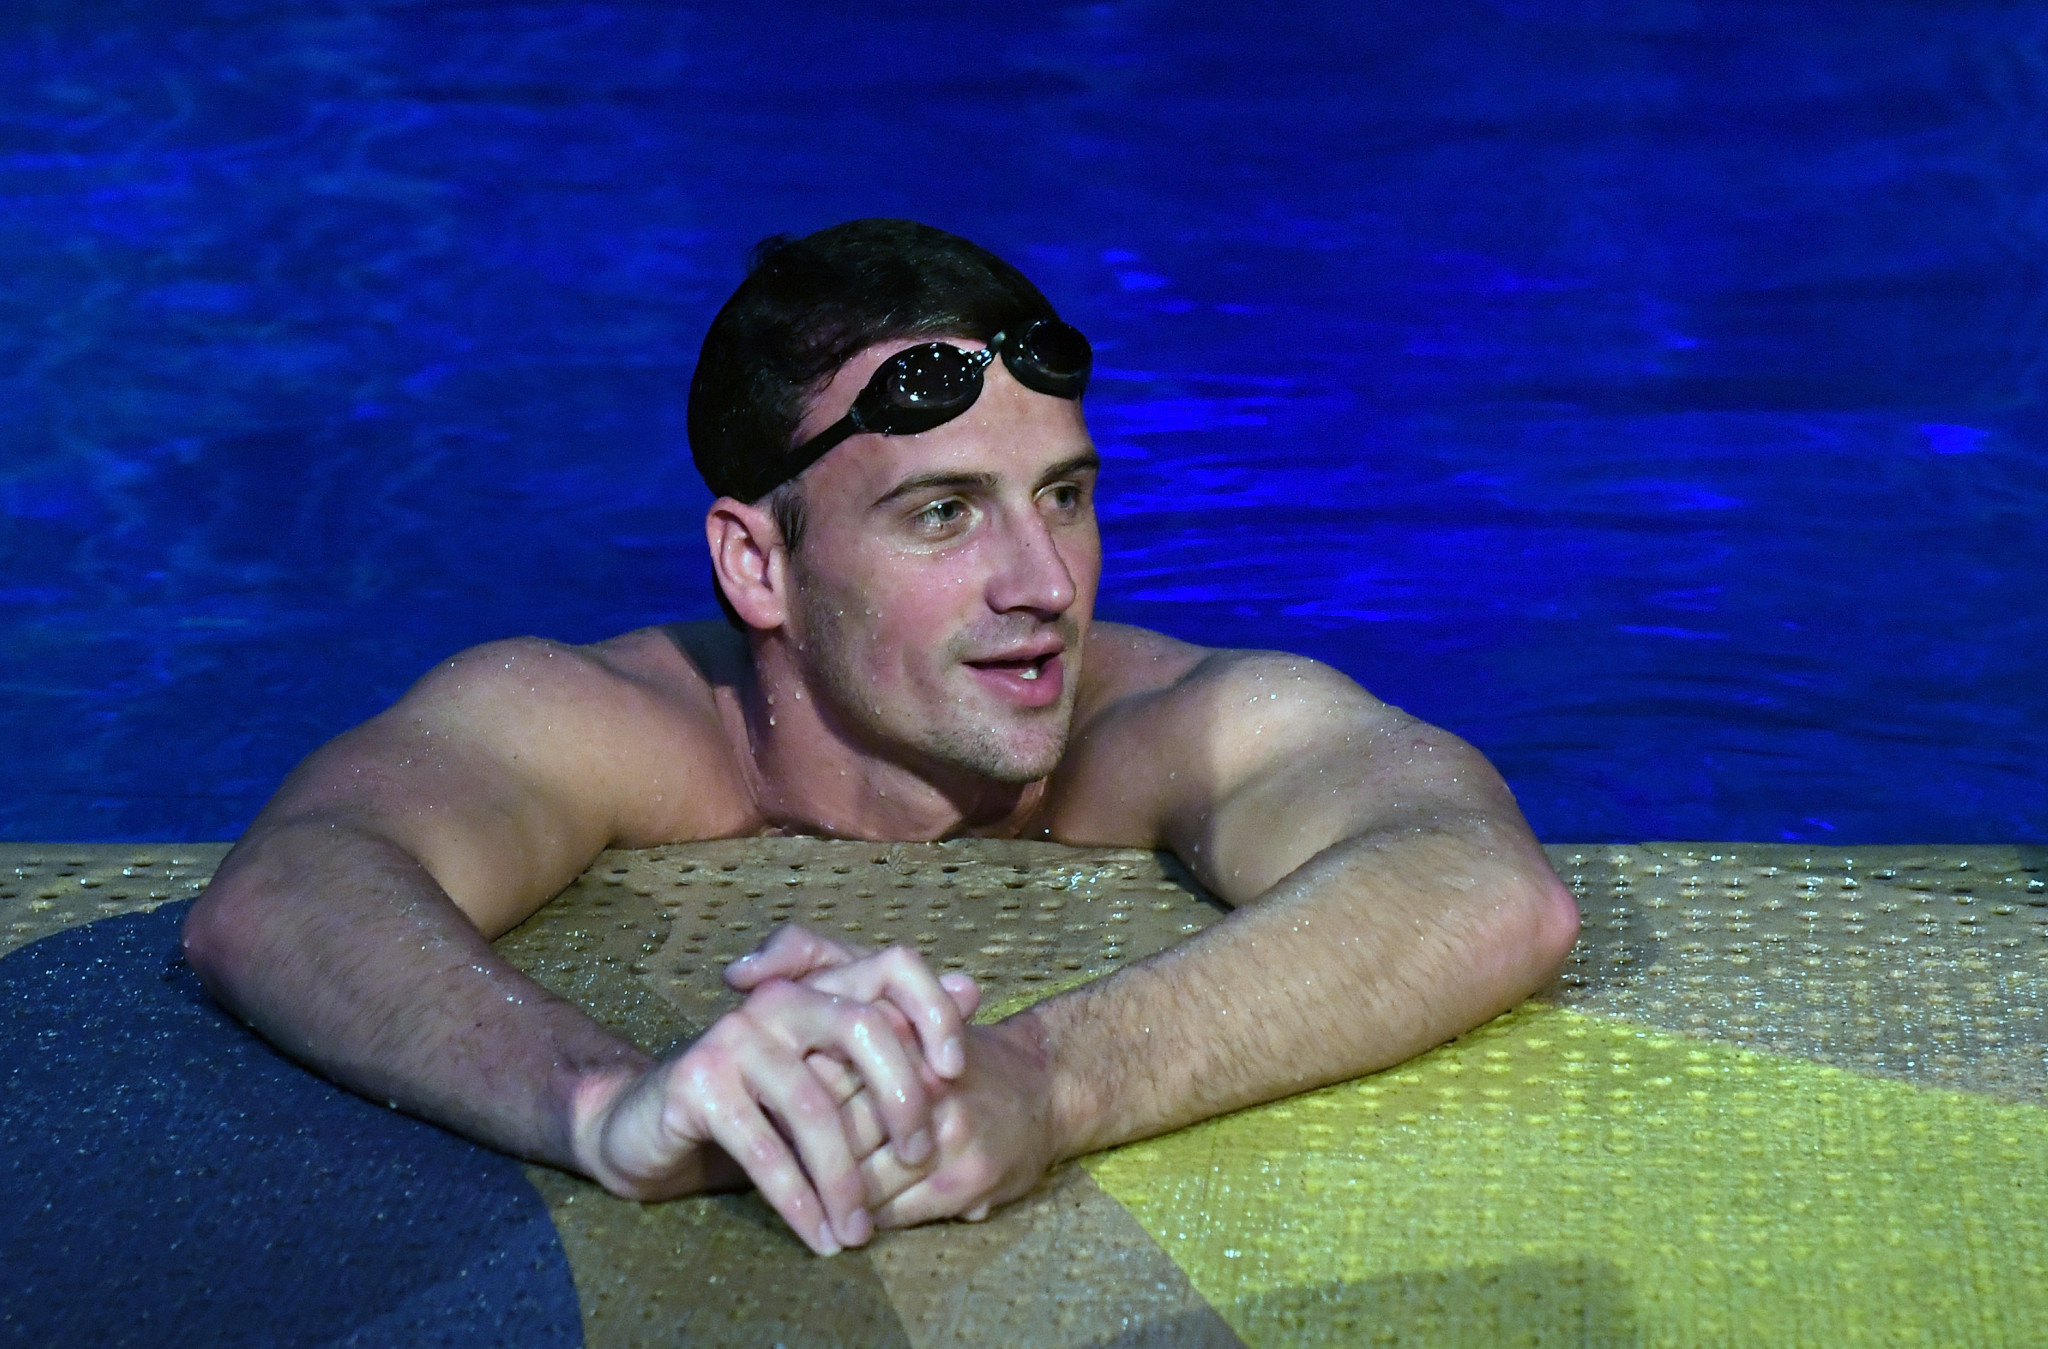 Swimmer Lochte handed 14-month suspension for anti-doping rule violation